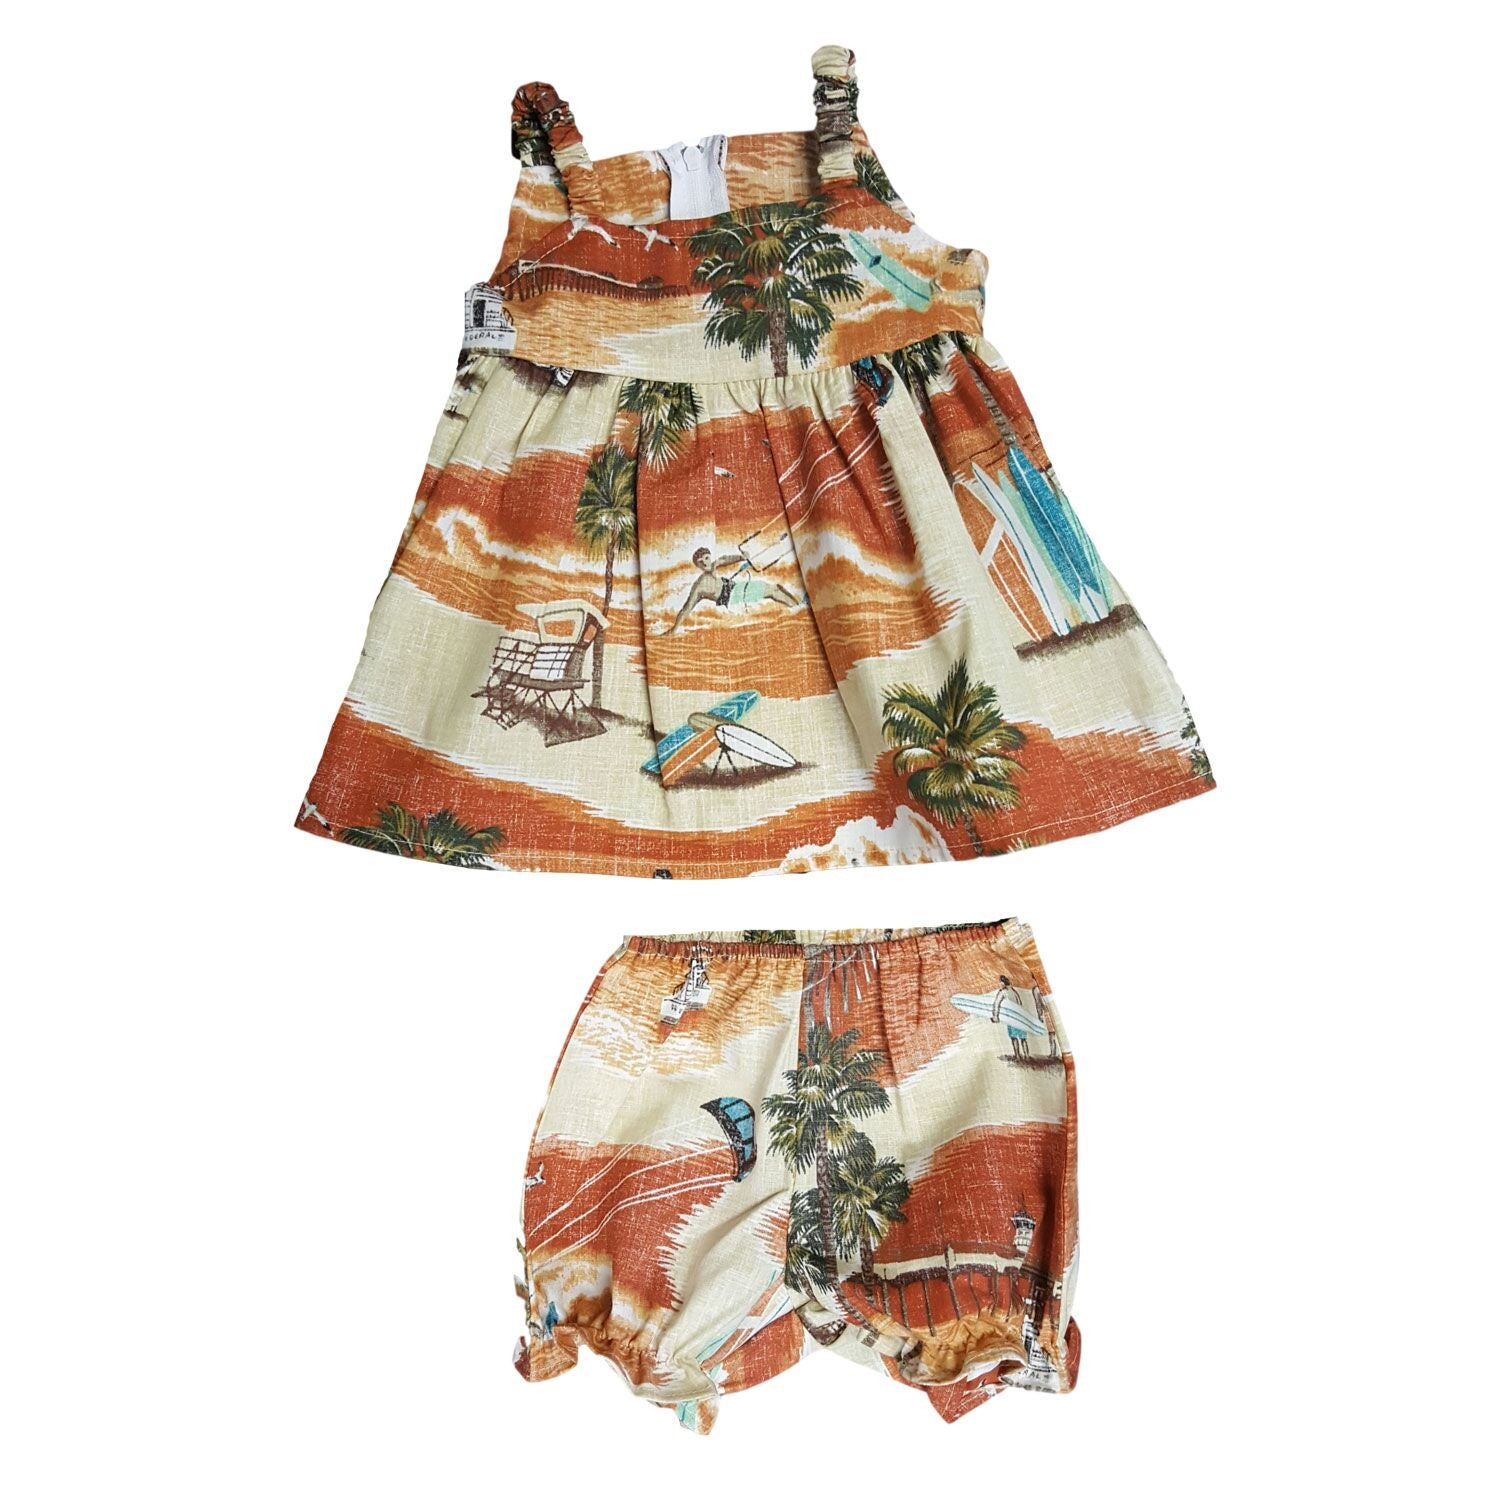 COASTAL TOWNS / TODDLER DRESS WITH BLOOMERS • 6M - 18M - Zoomed